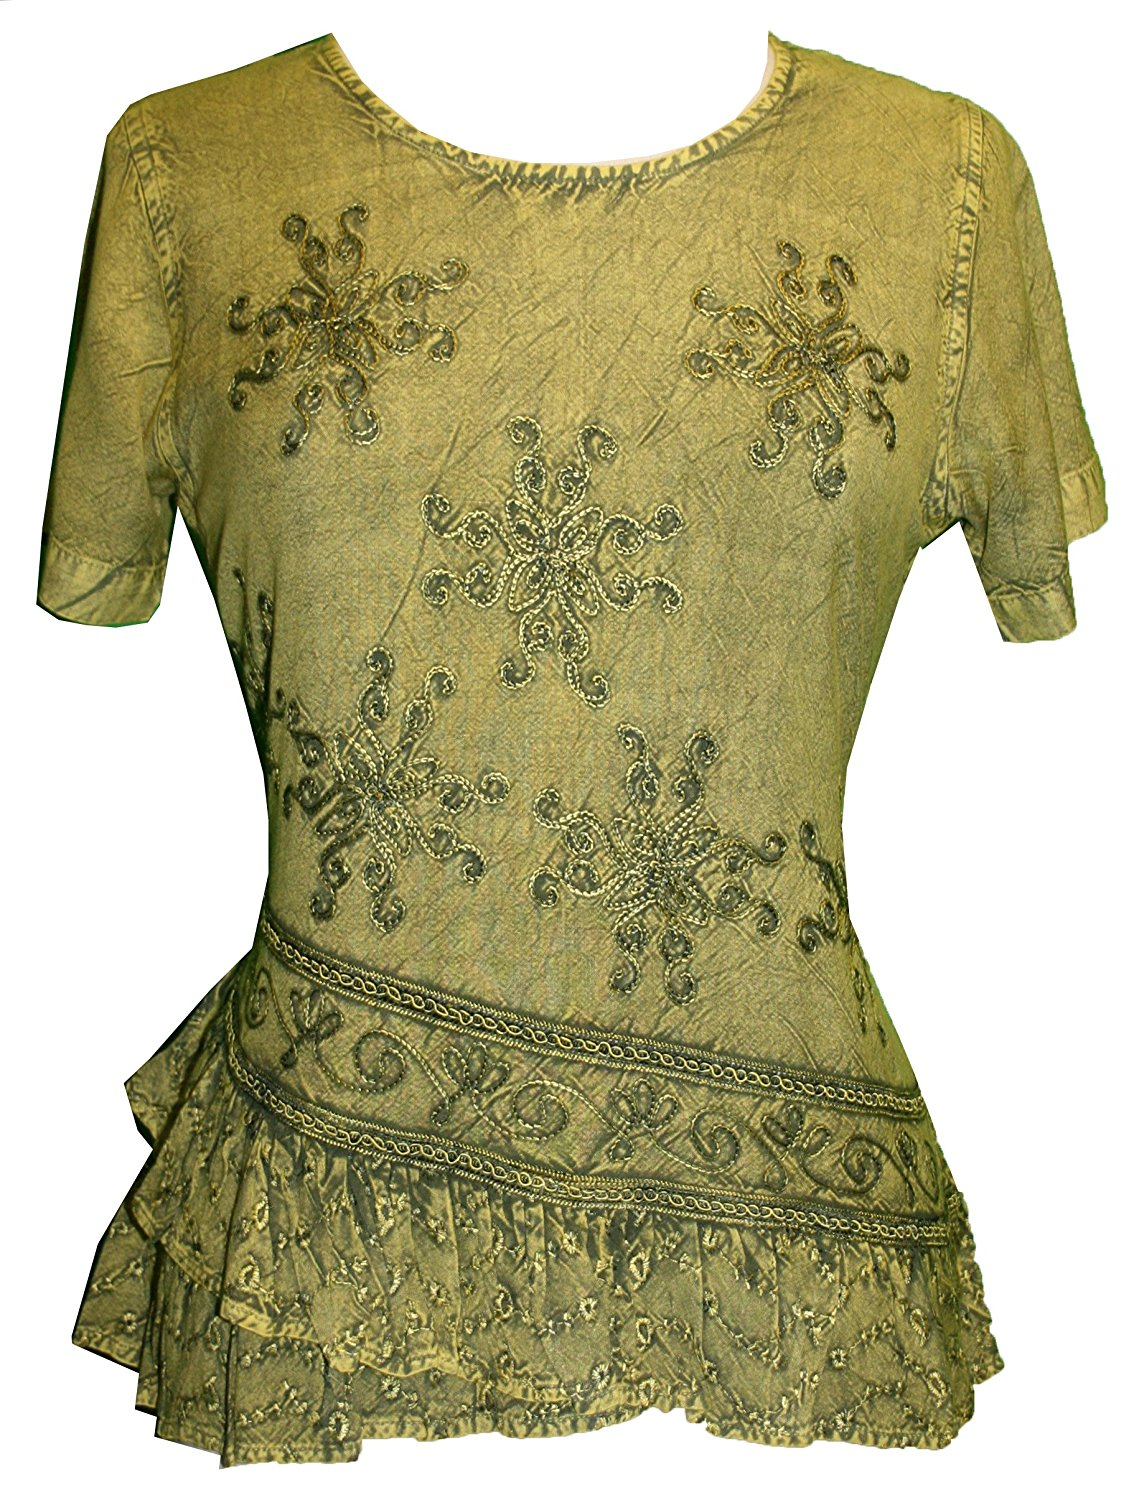 Medieval Renaissance Gypsy Ruffle Cross Blouse - Agan Traders, Lime Green